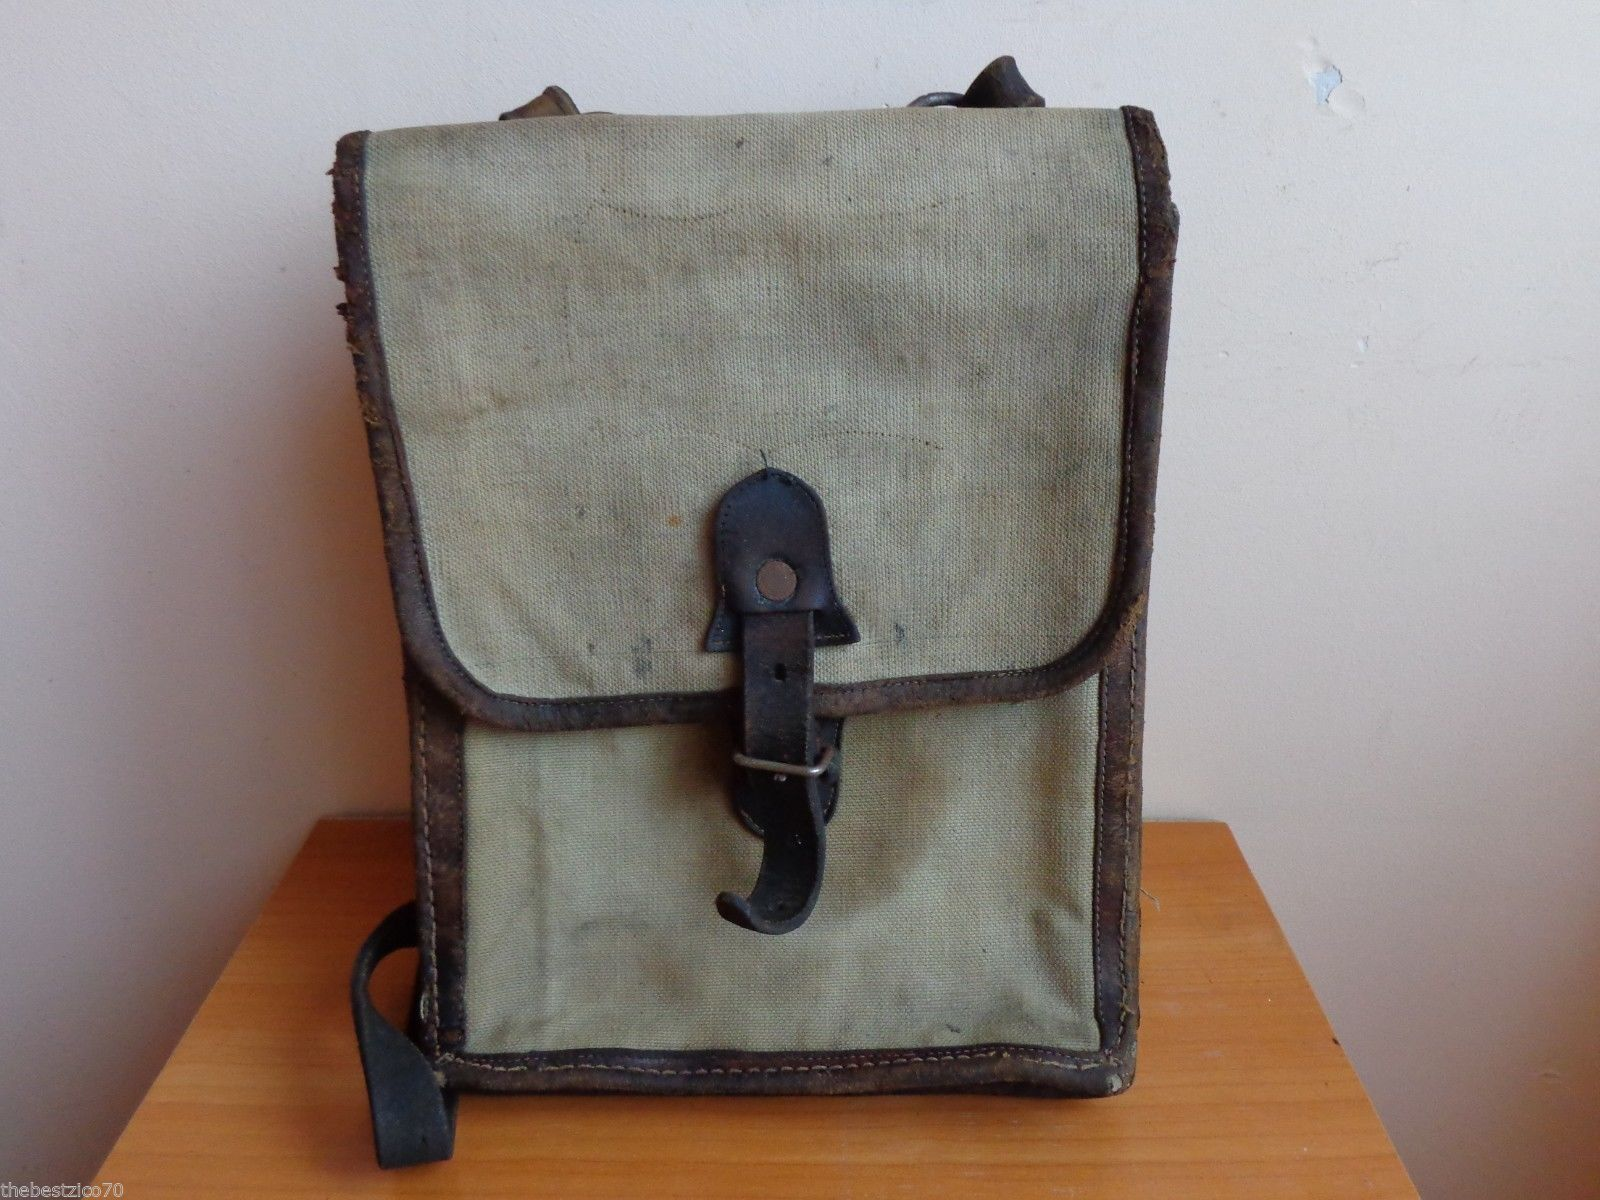 Rare wwii german officer canvas map documents case bag pouch marked rare wwii german officer canvas map documents case bag pouch marked ebay gumiabroncs Images